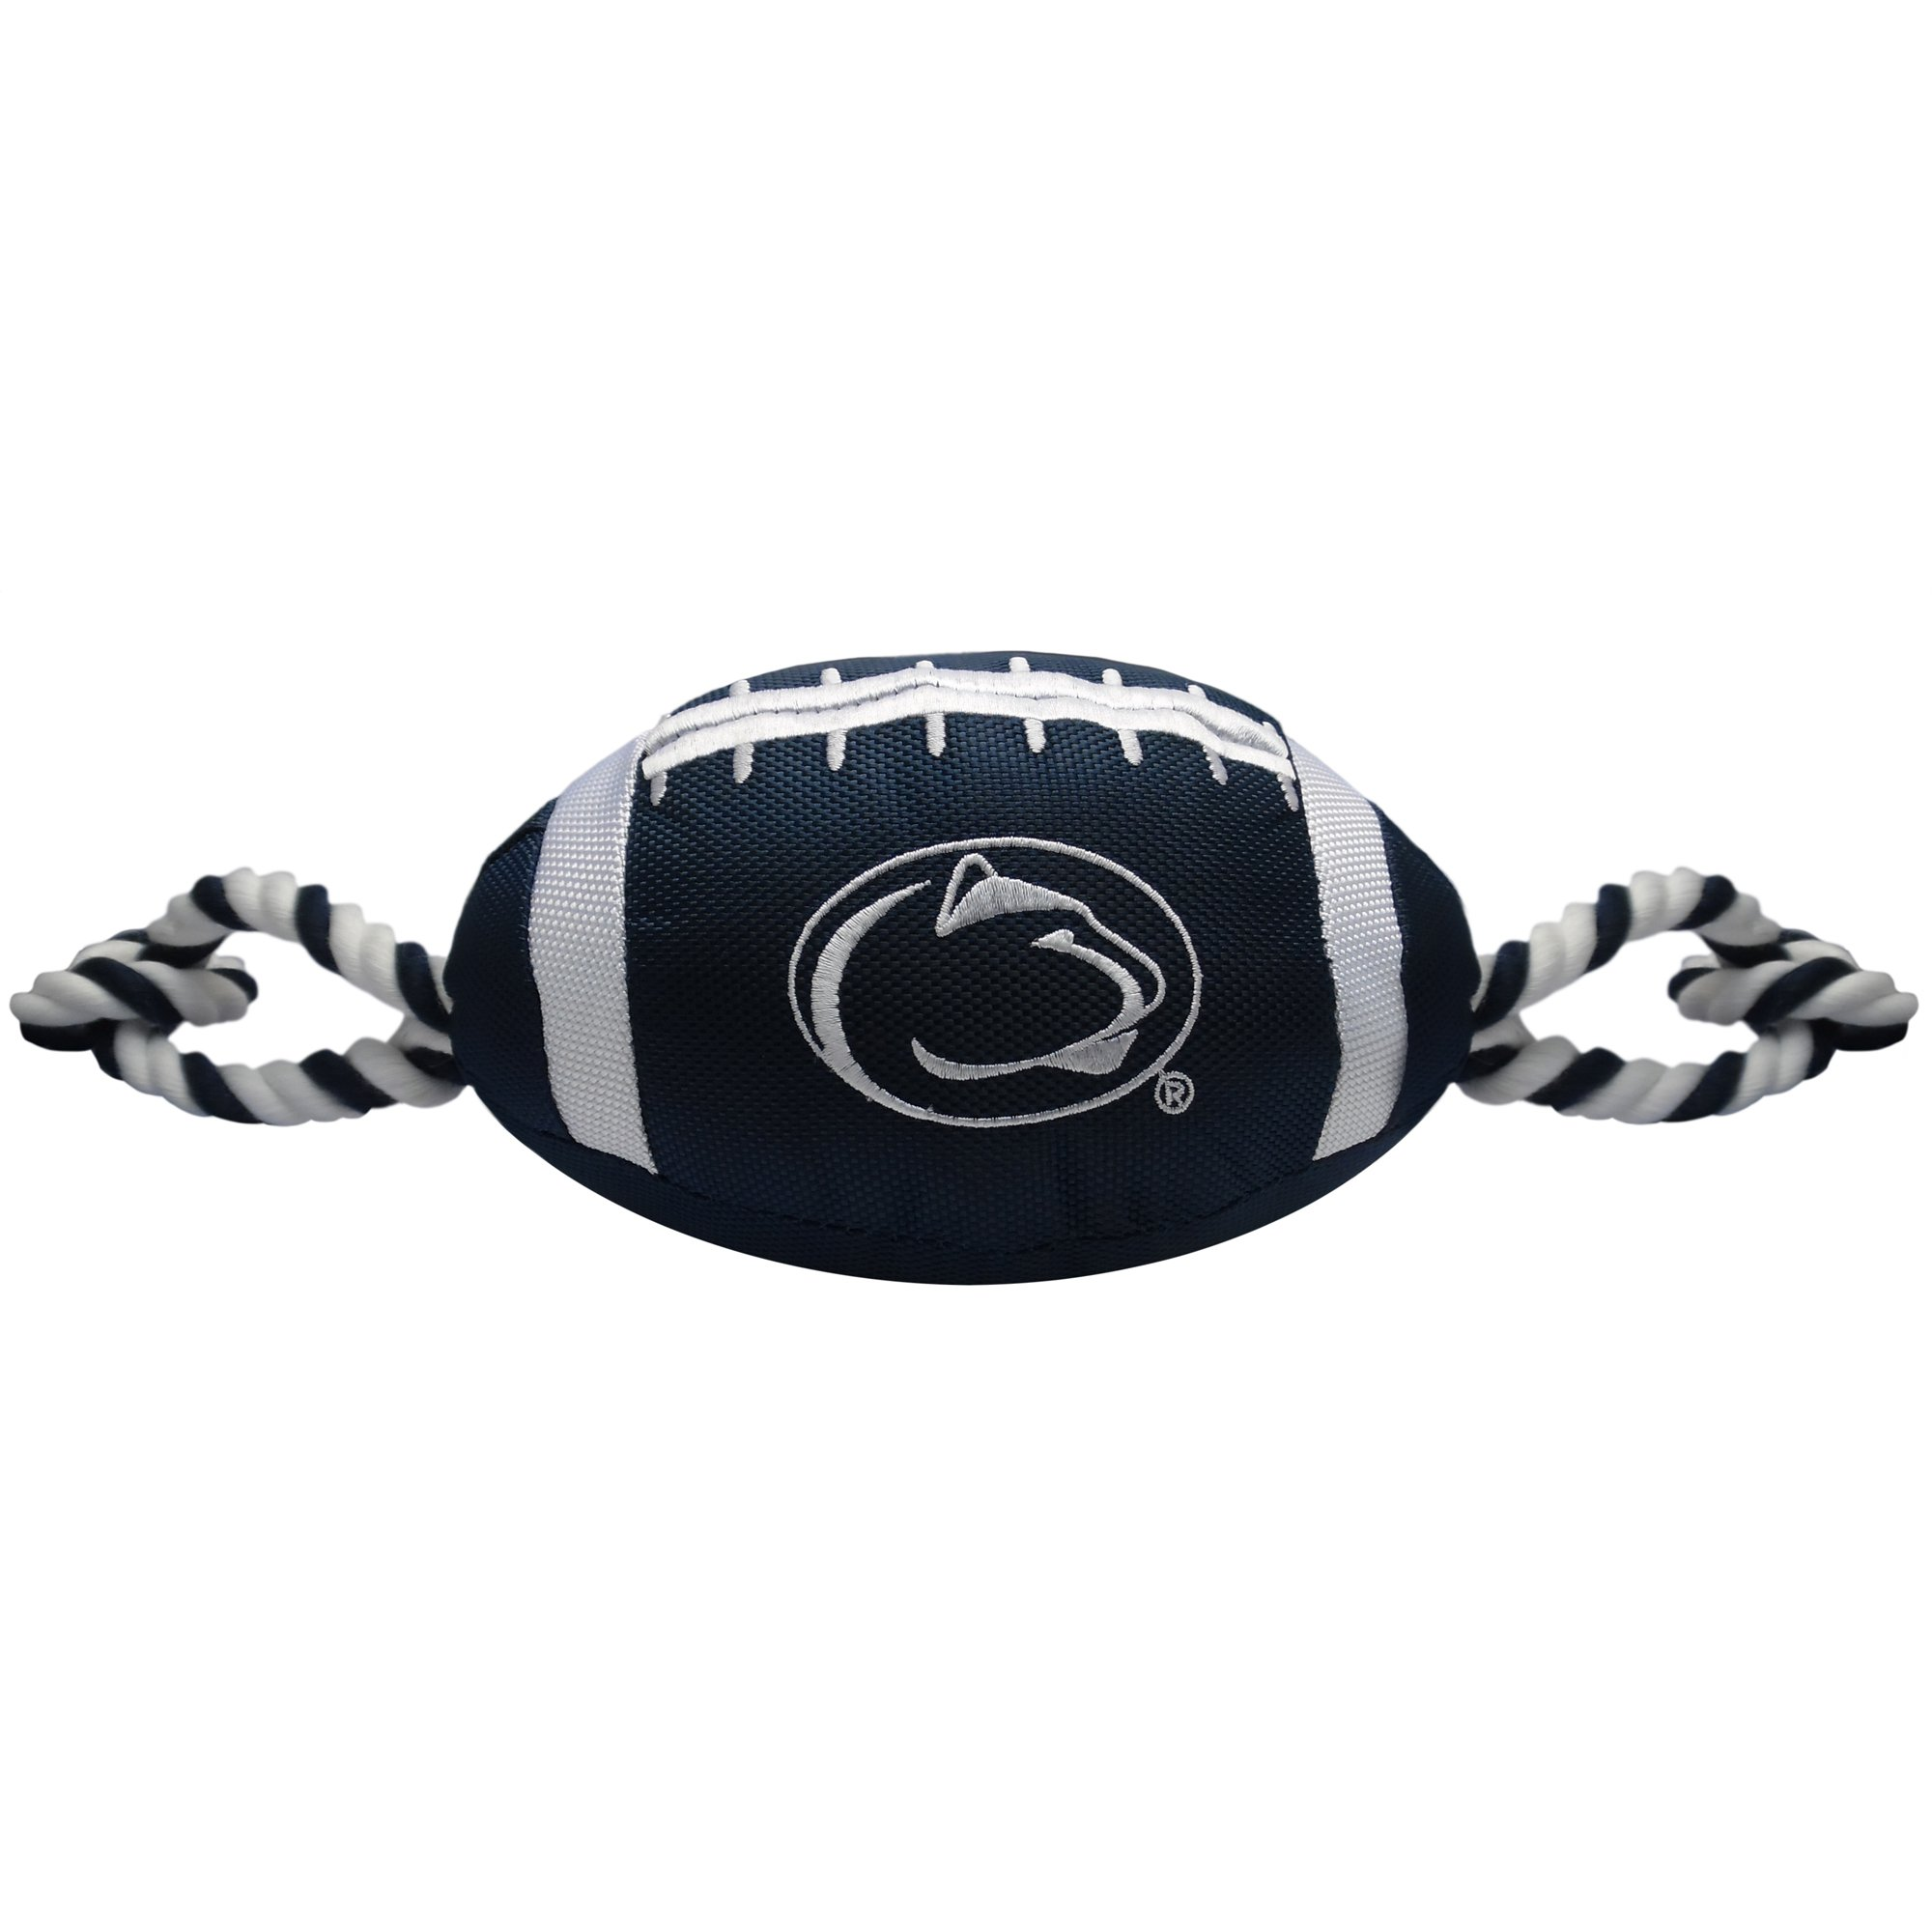 Pets First NCAA Penn State Nittany Lions Football Dog Toy, Tough Quality Nylon Materials, Strong Pull Ropes, Inner Squeaker, Collegiate Team Color